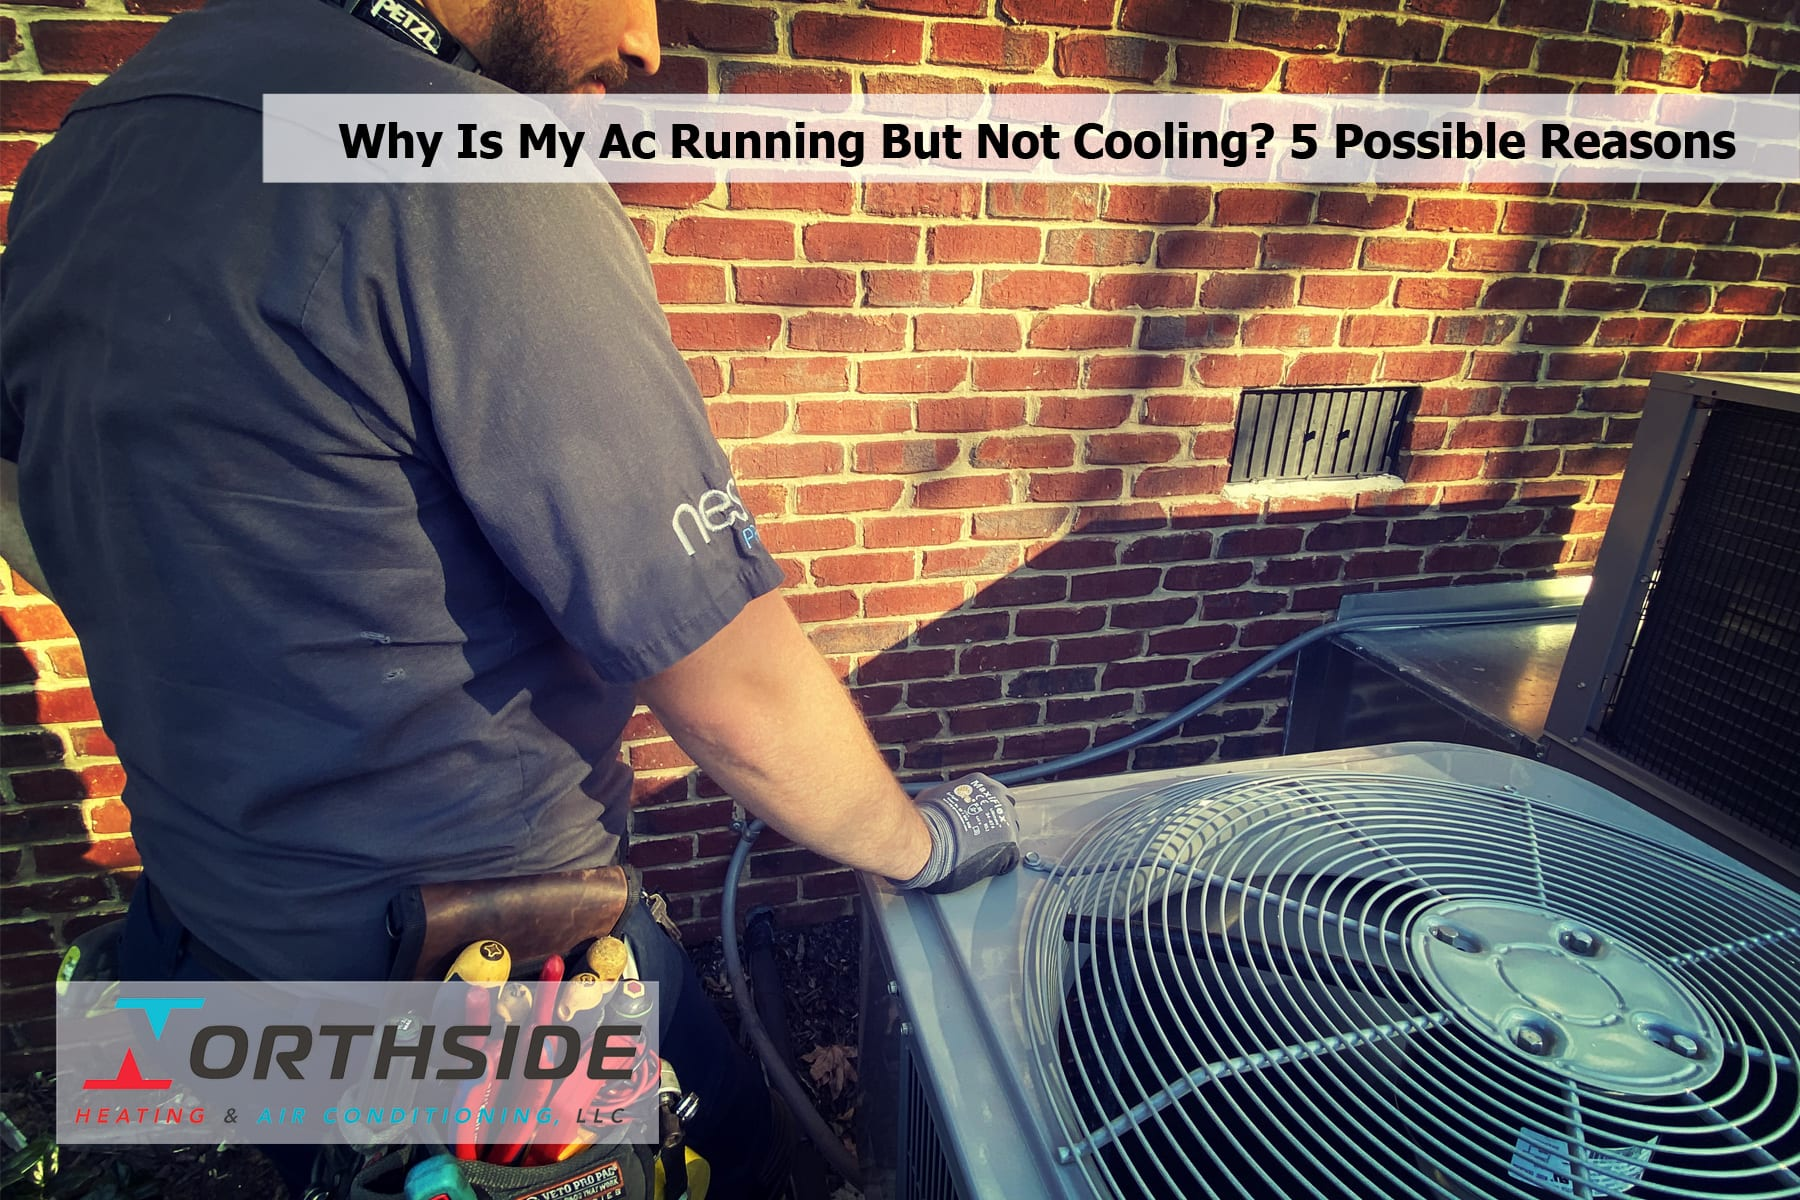 Why Is My Ac Running But Not Cooling? 5 Possible Reasons